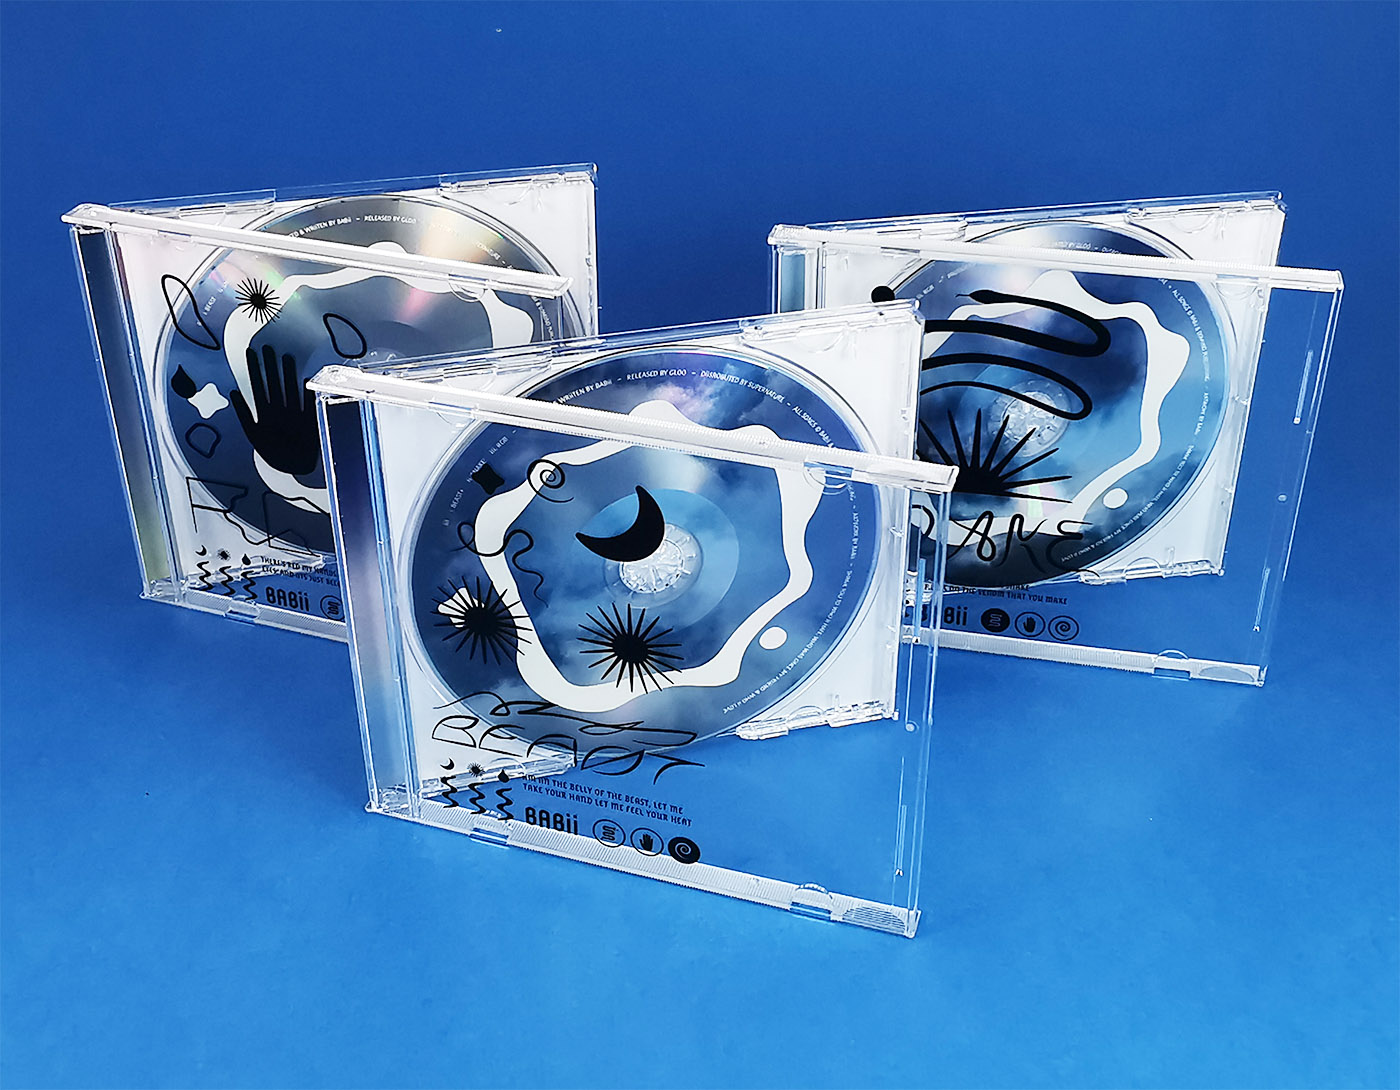 Triple CD jewel case set with on-body printing directly on the jewel cases